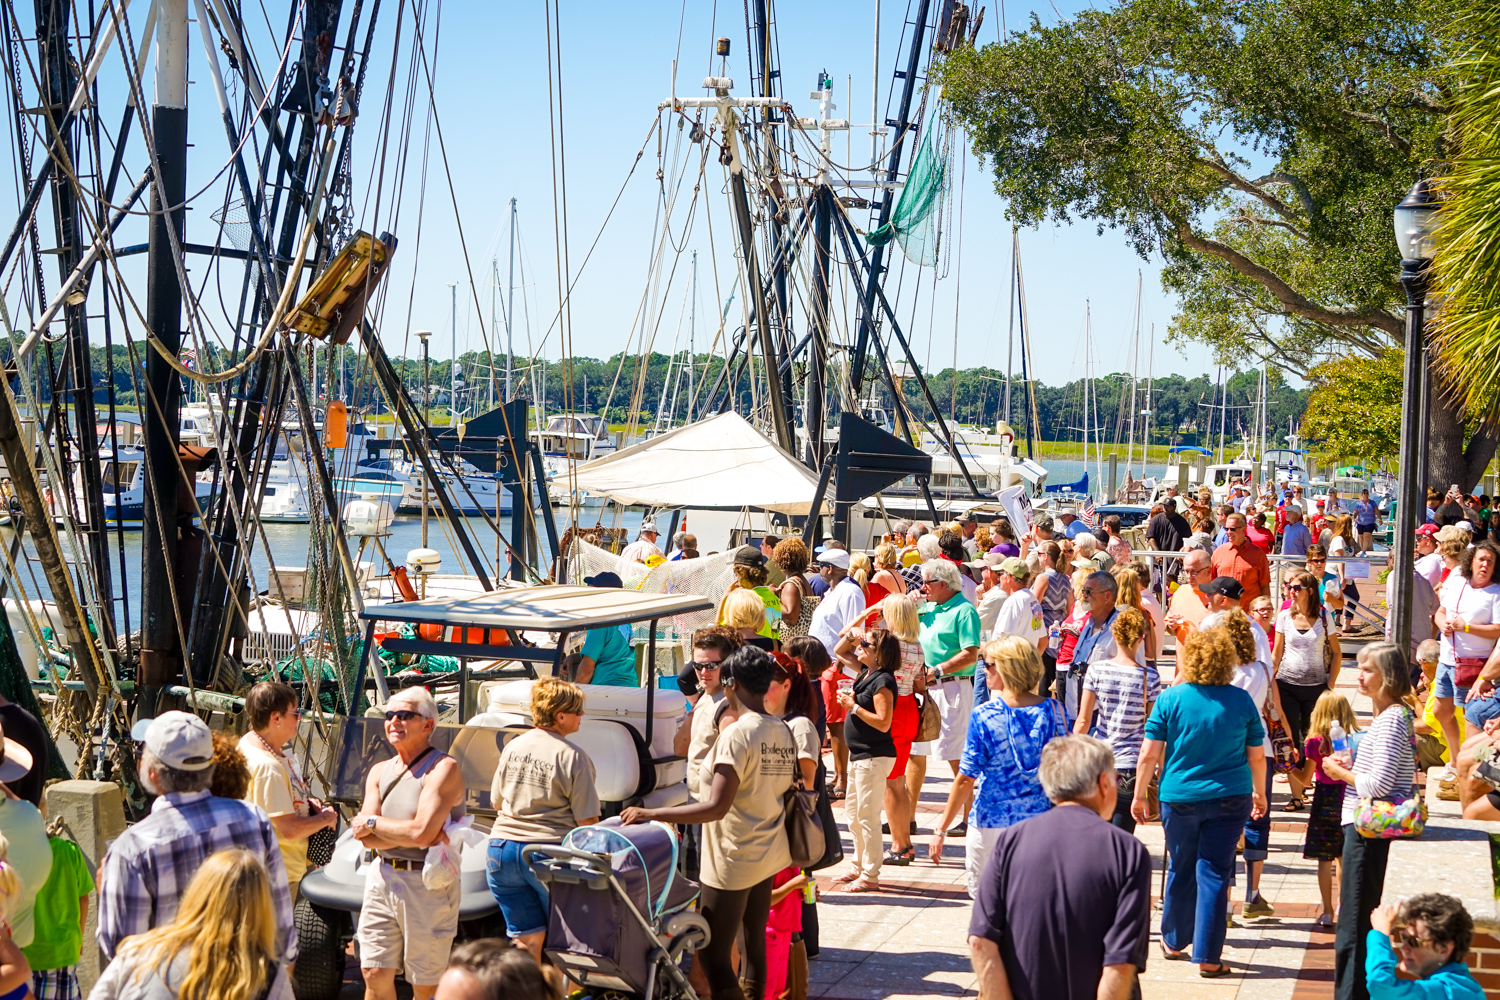 The Beaufort Shrimp Festival and 5k Race